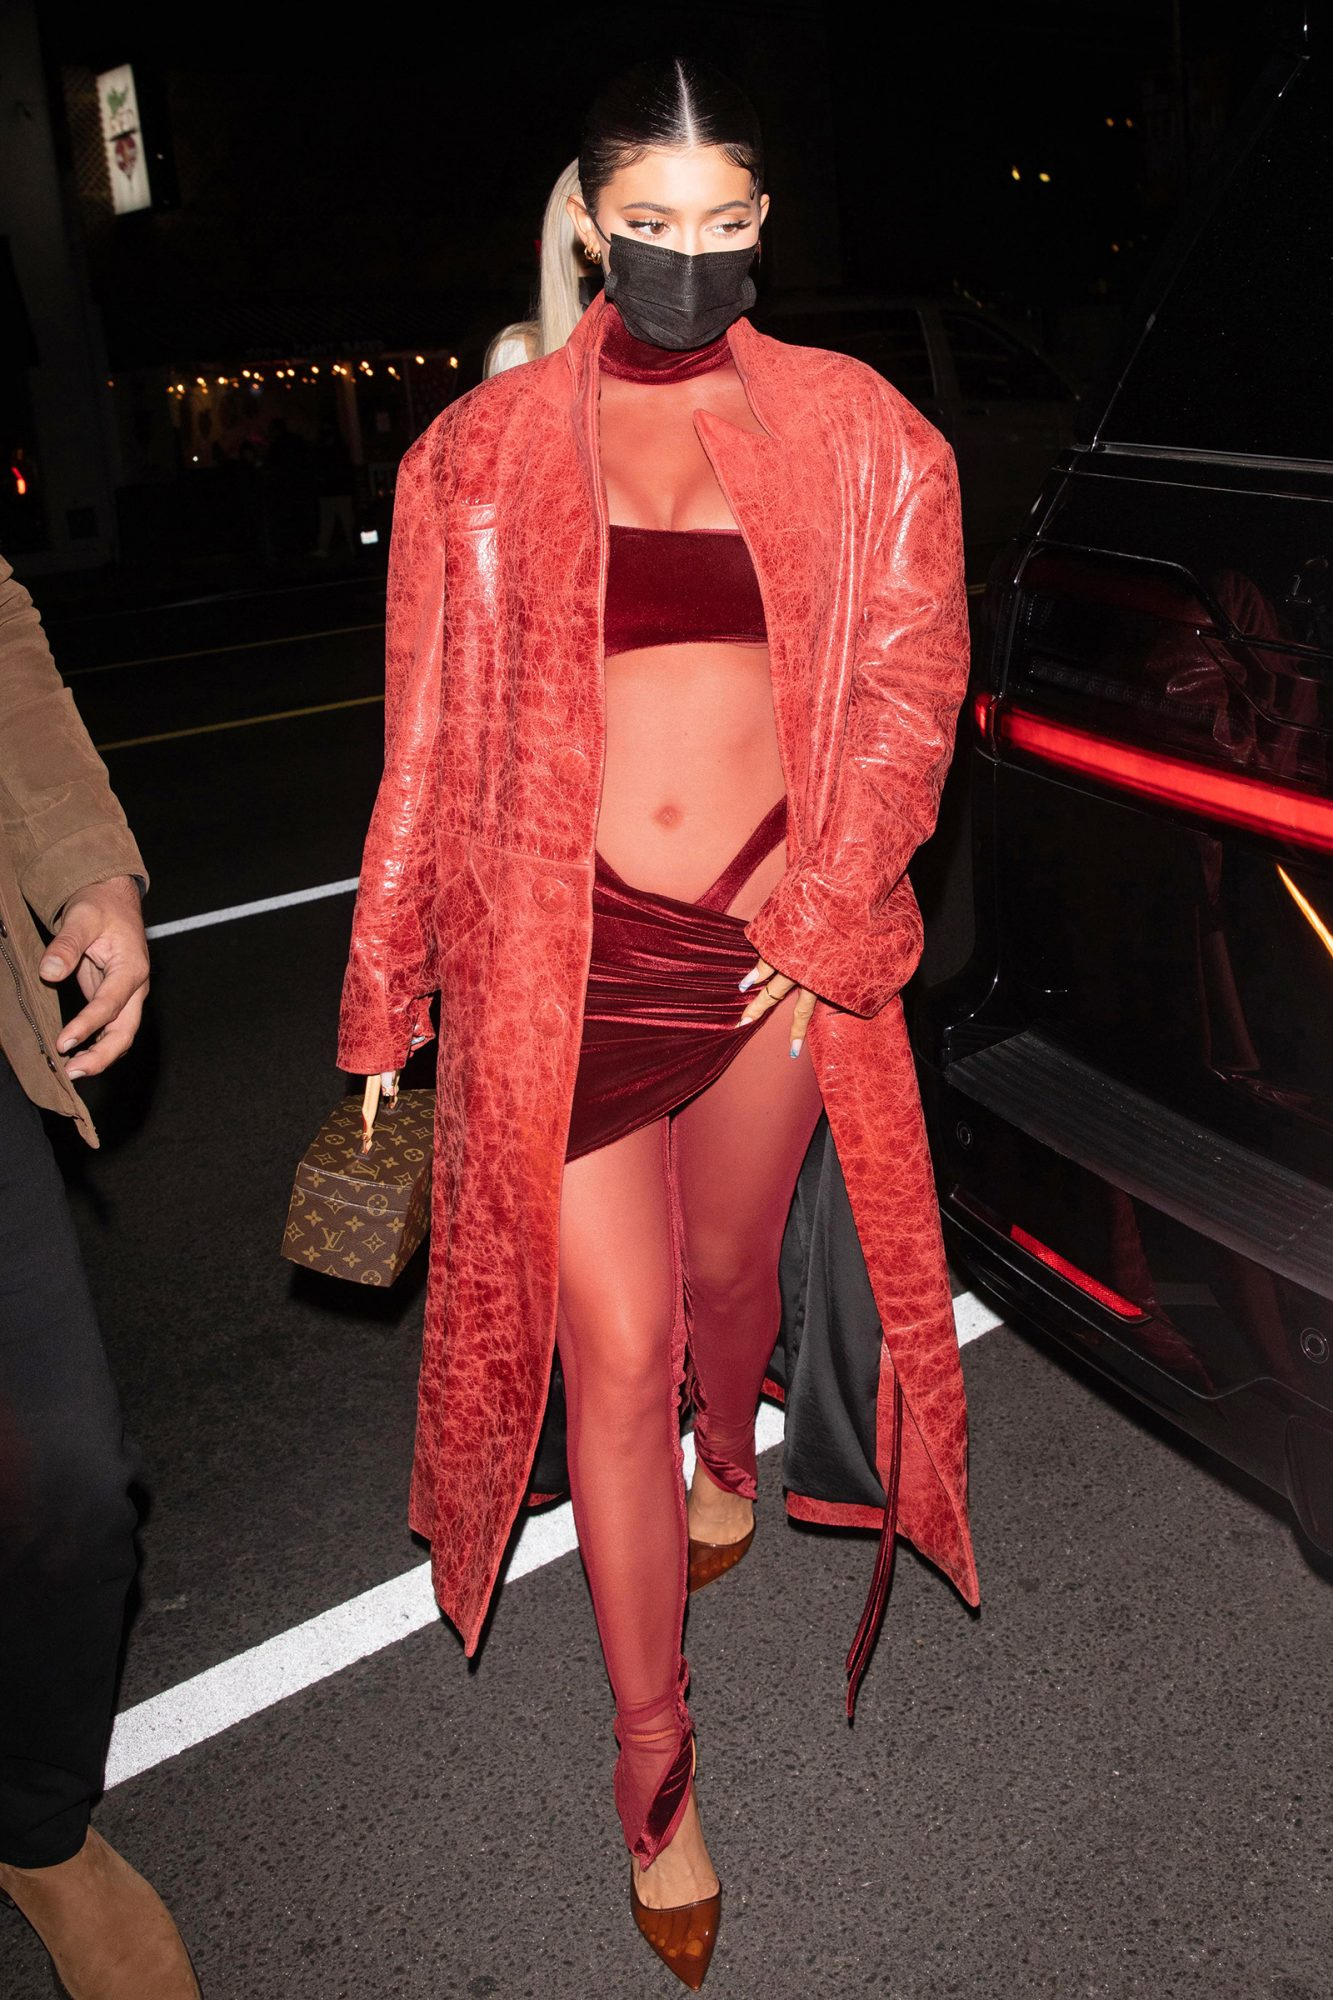 Kylie Jenner Makes A Stunning Arrival to Justin Bieber Party at The Nice Guy